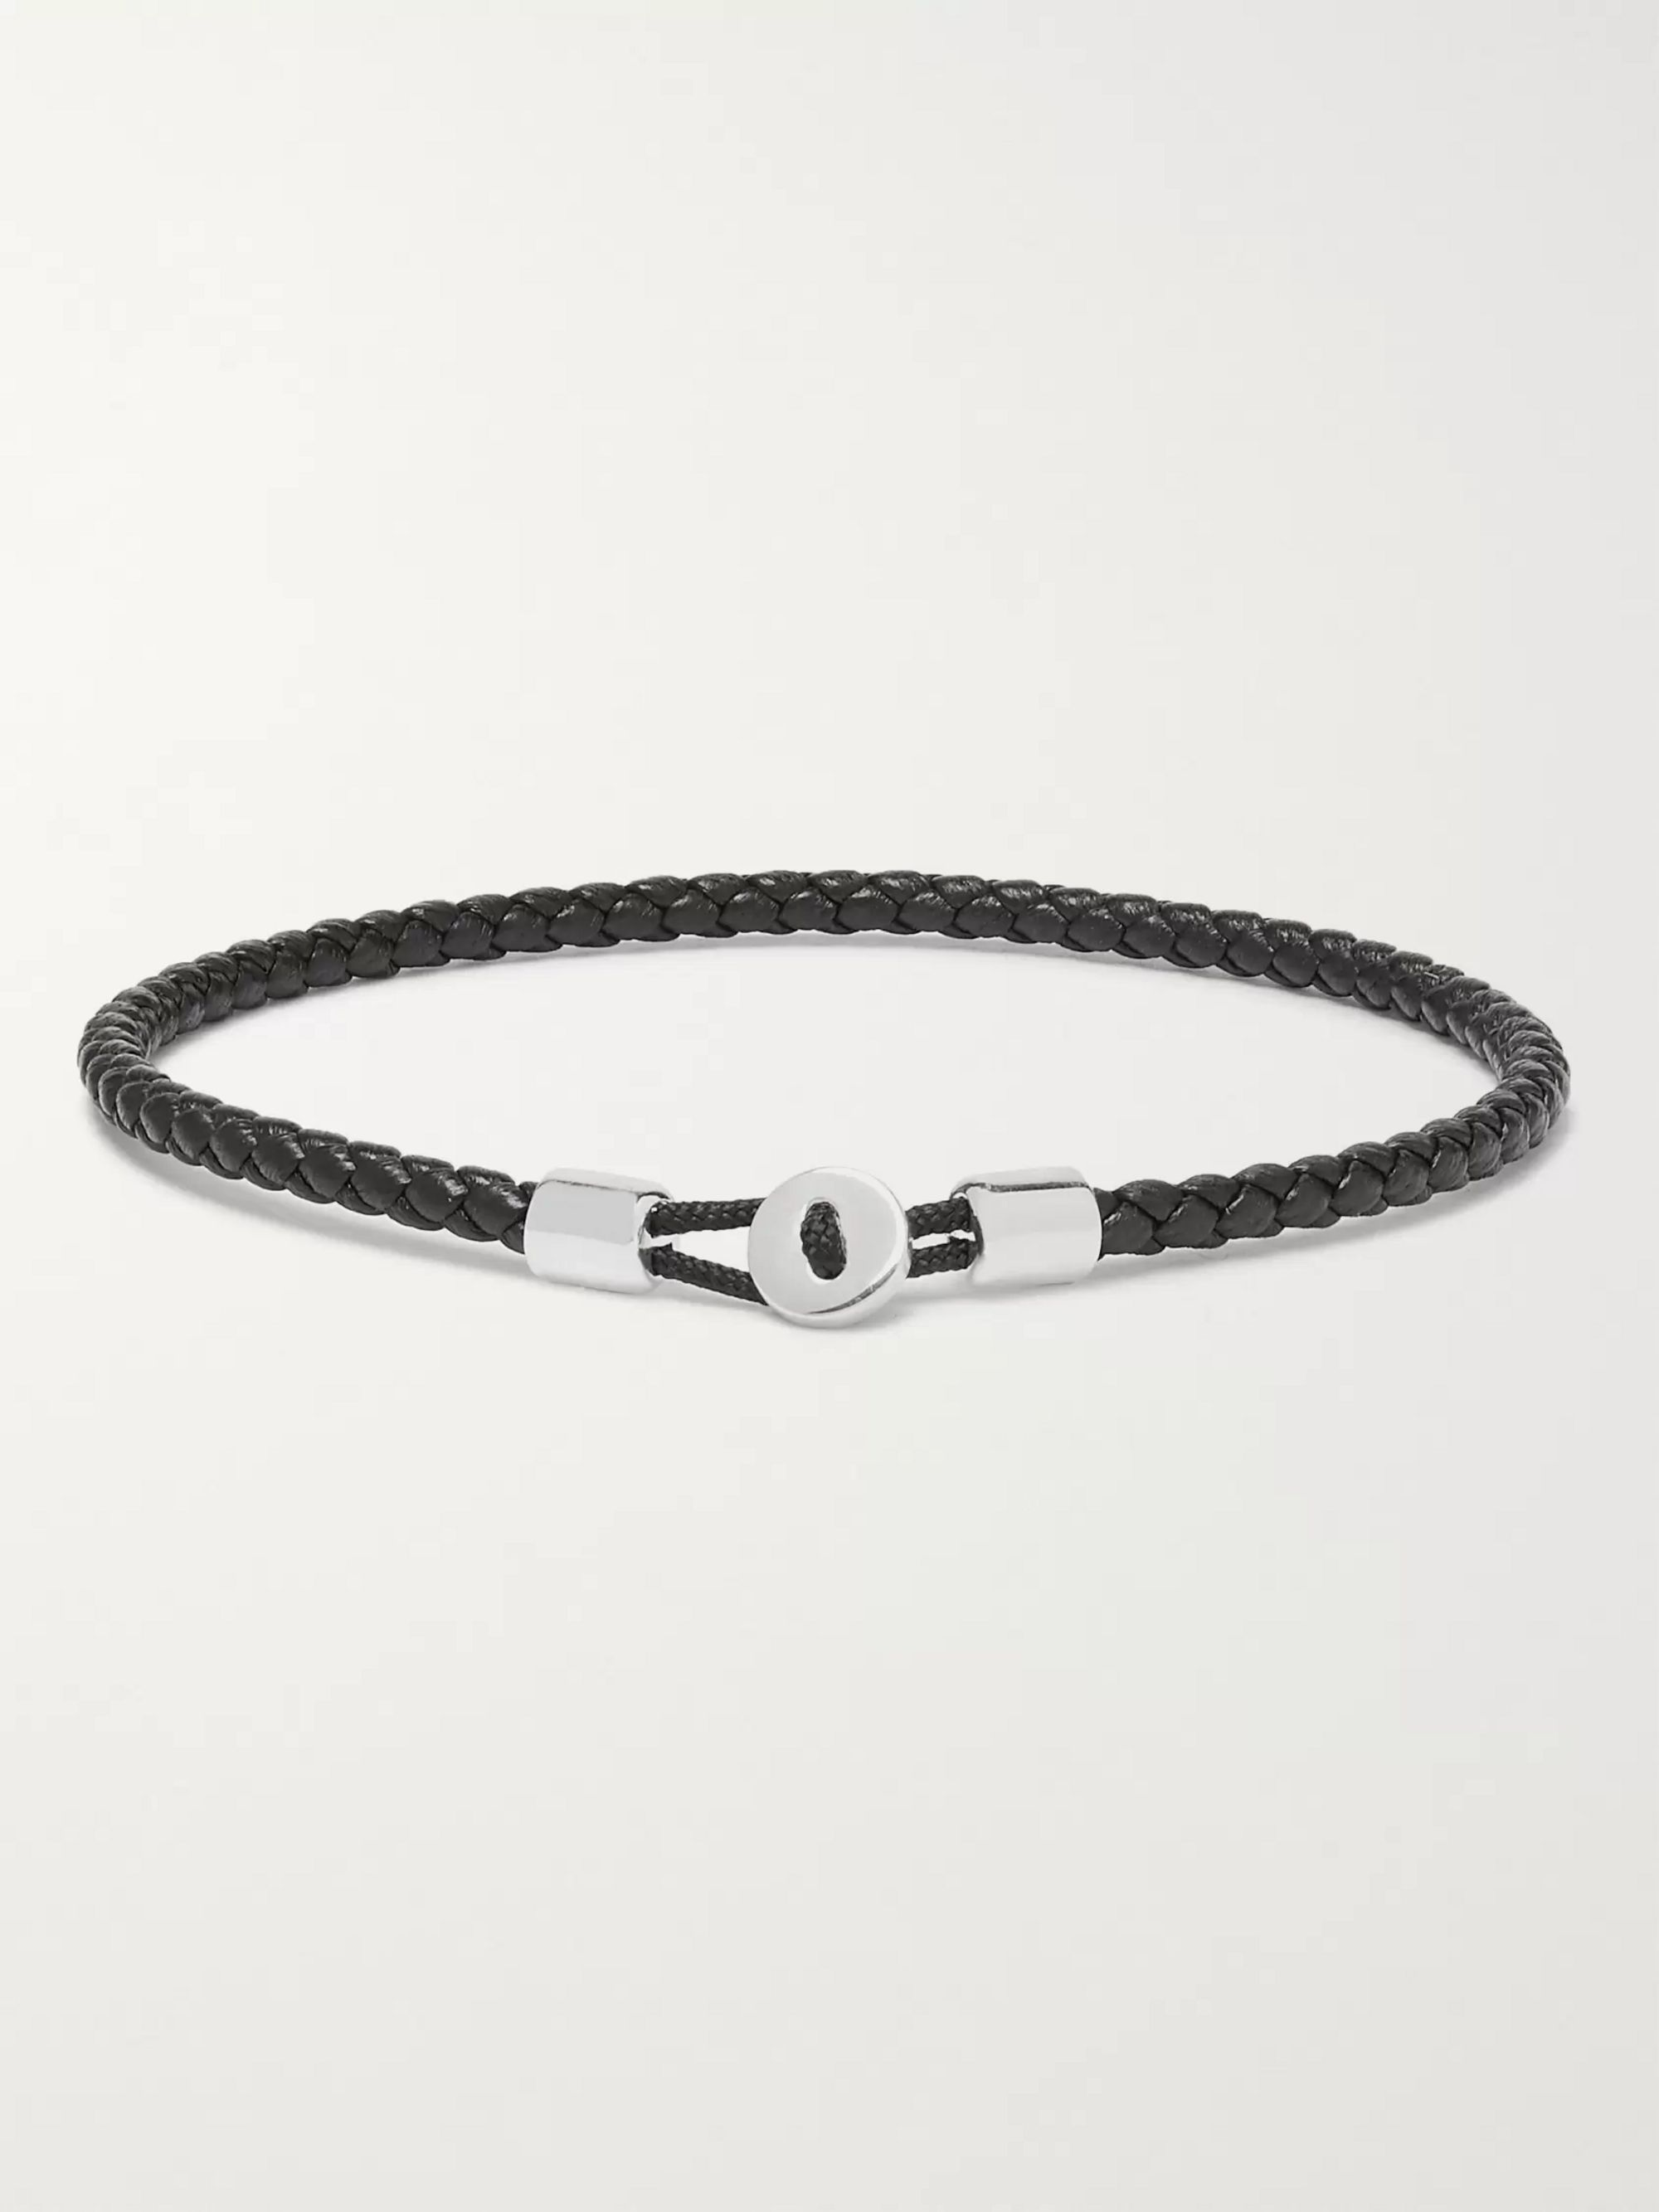 Miansai Nexus Woven Leather and Sterling Silver Bracelet